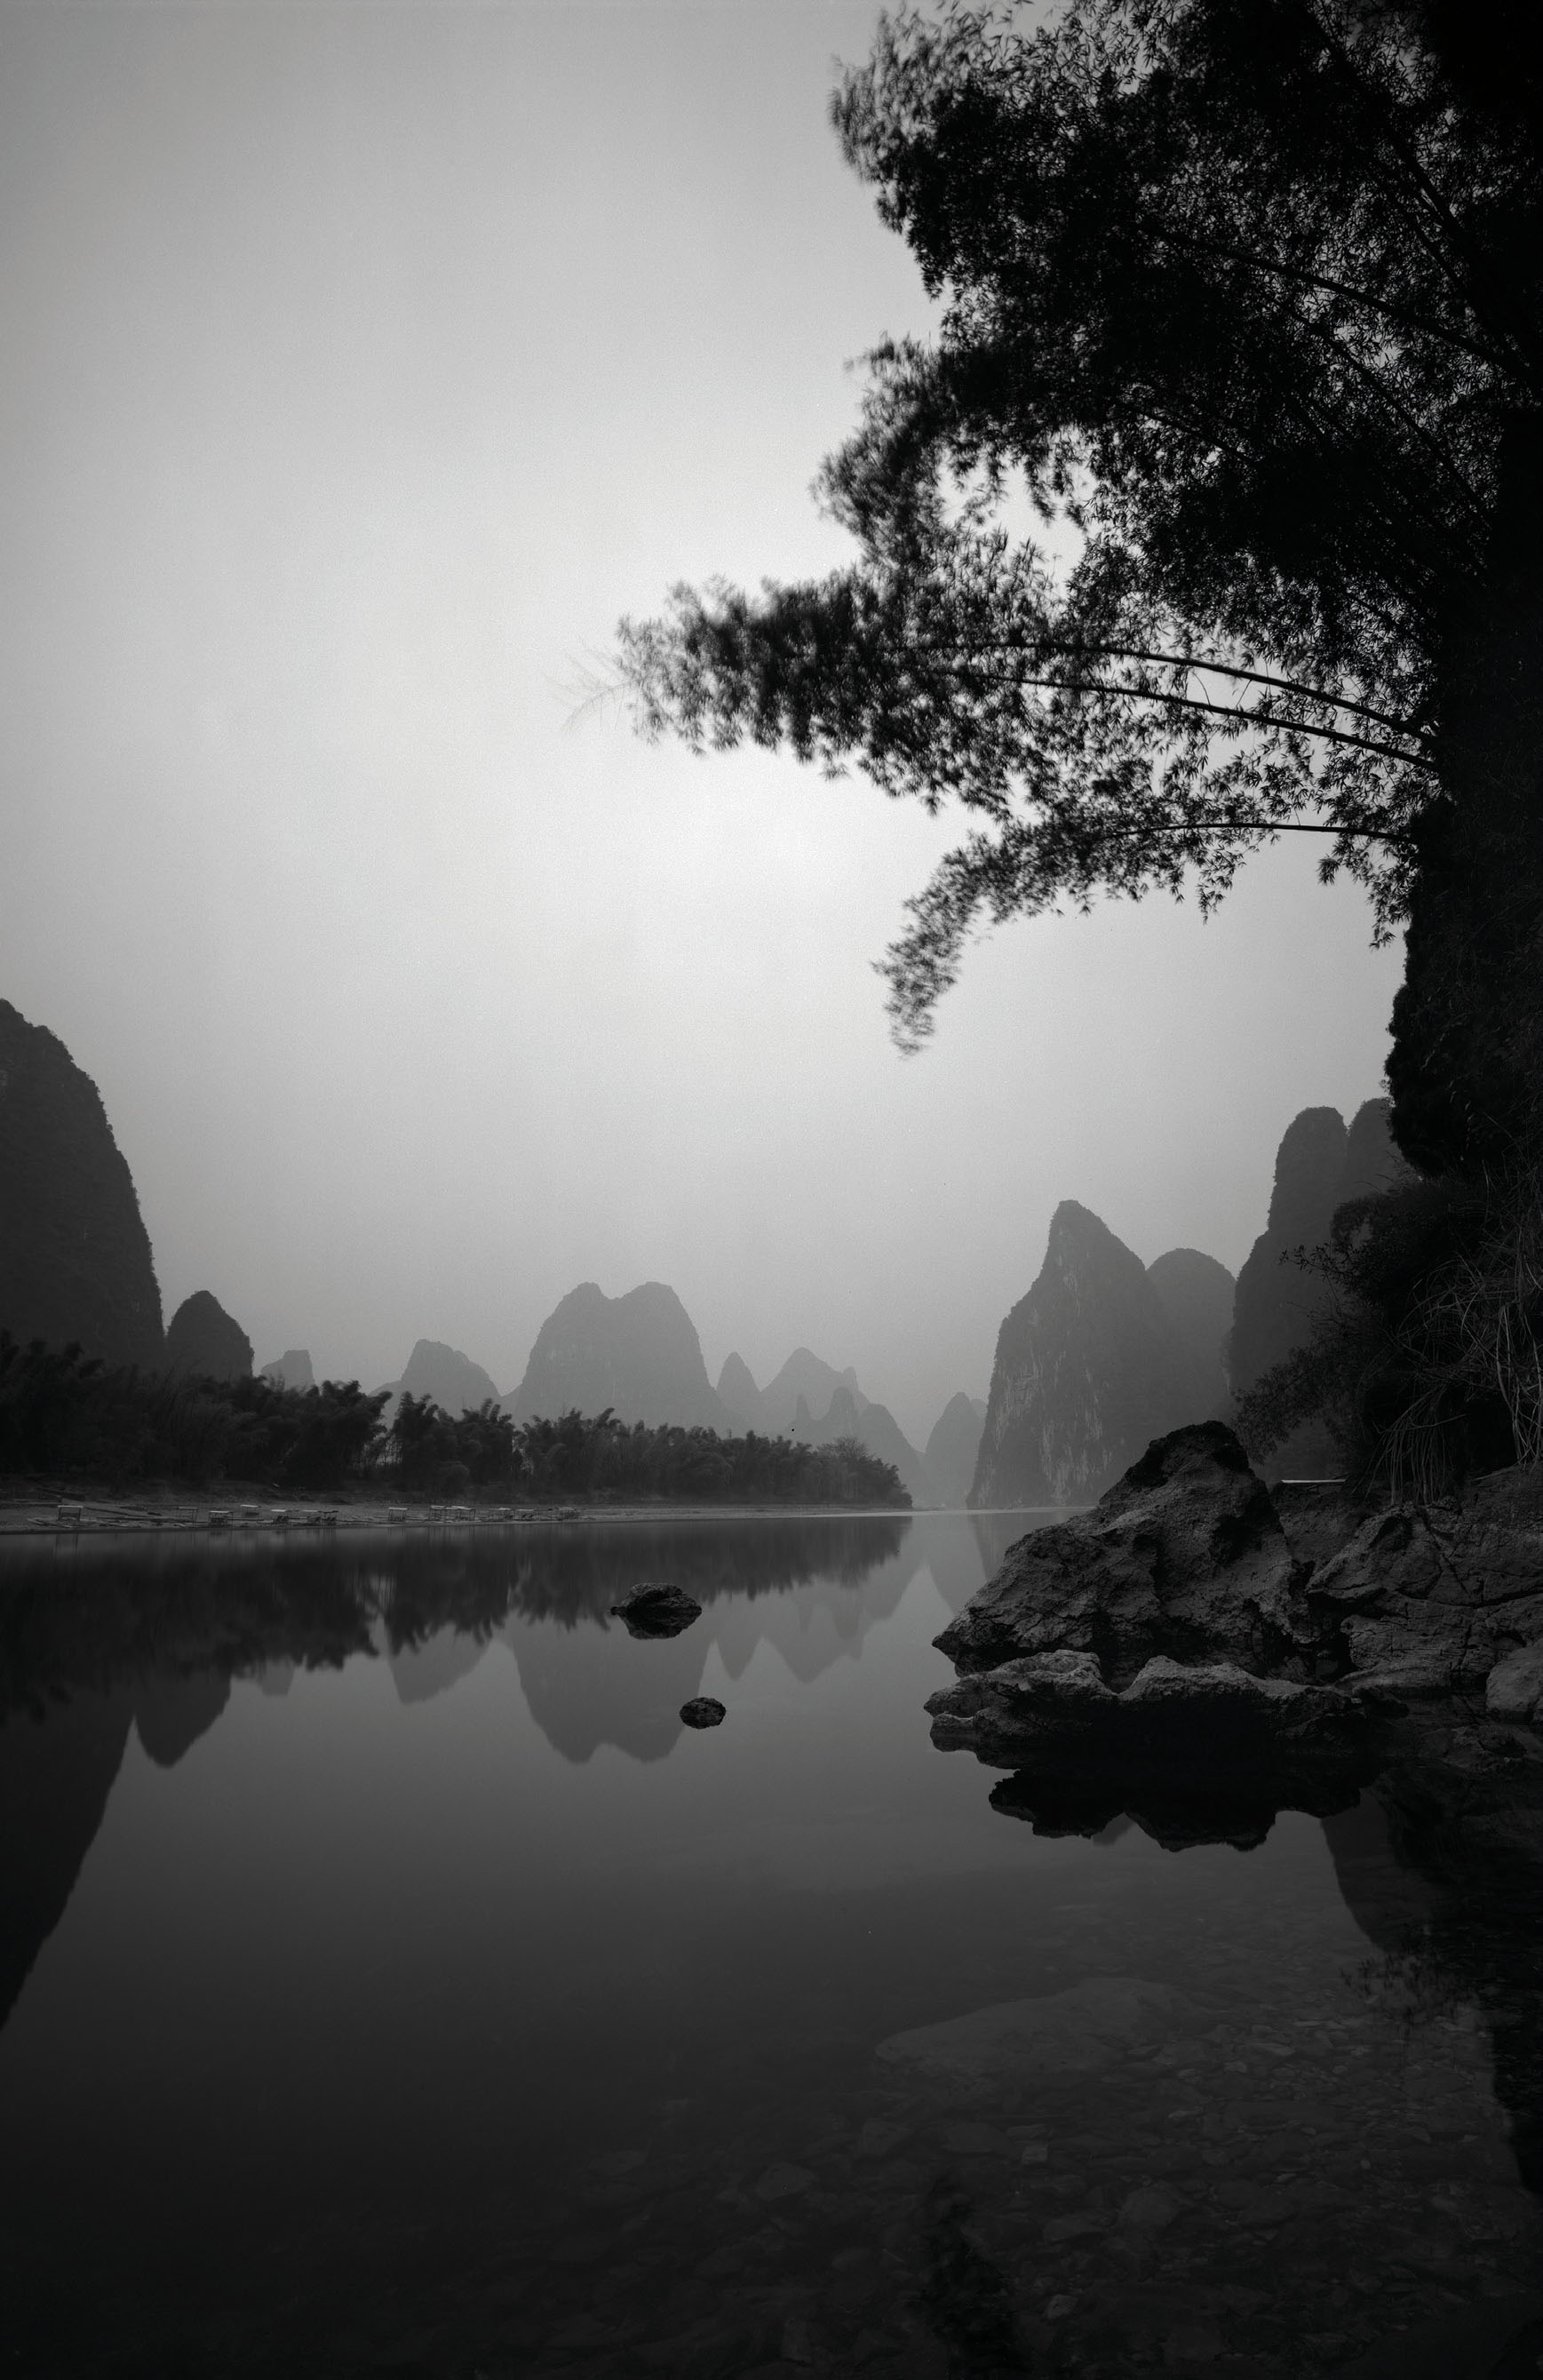 Lijiang River, Yangshuo, China